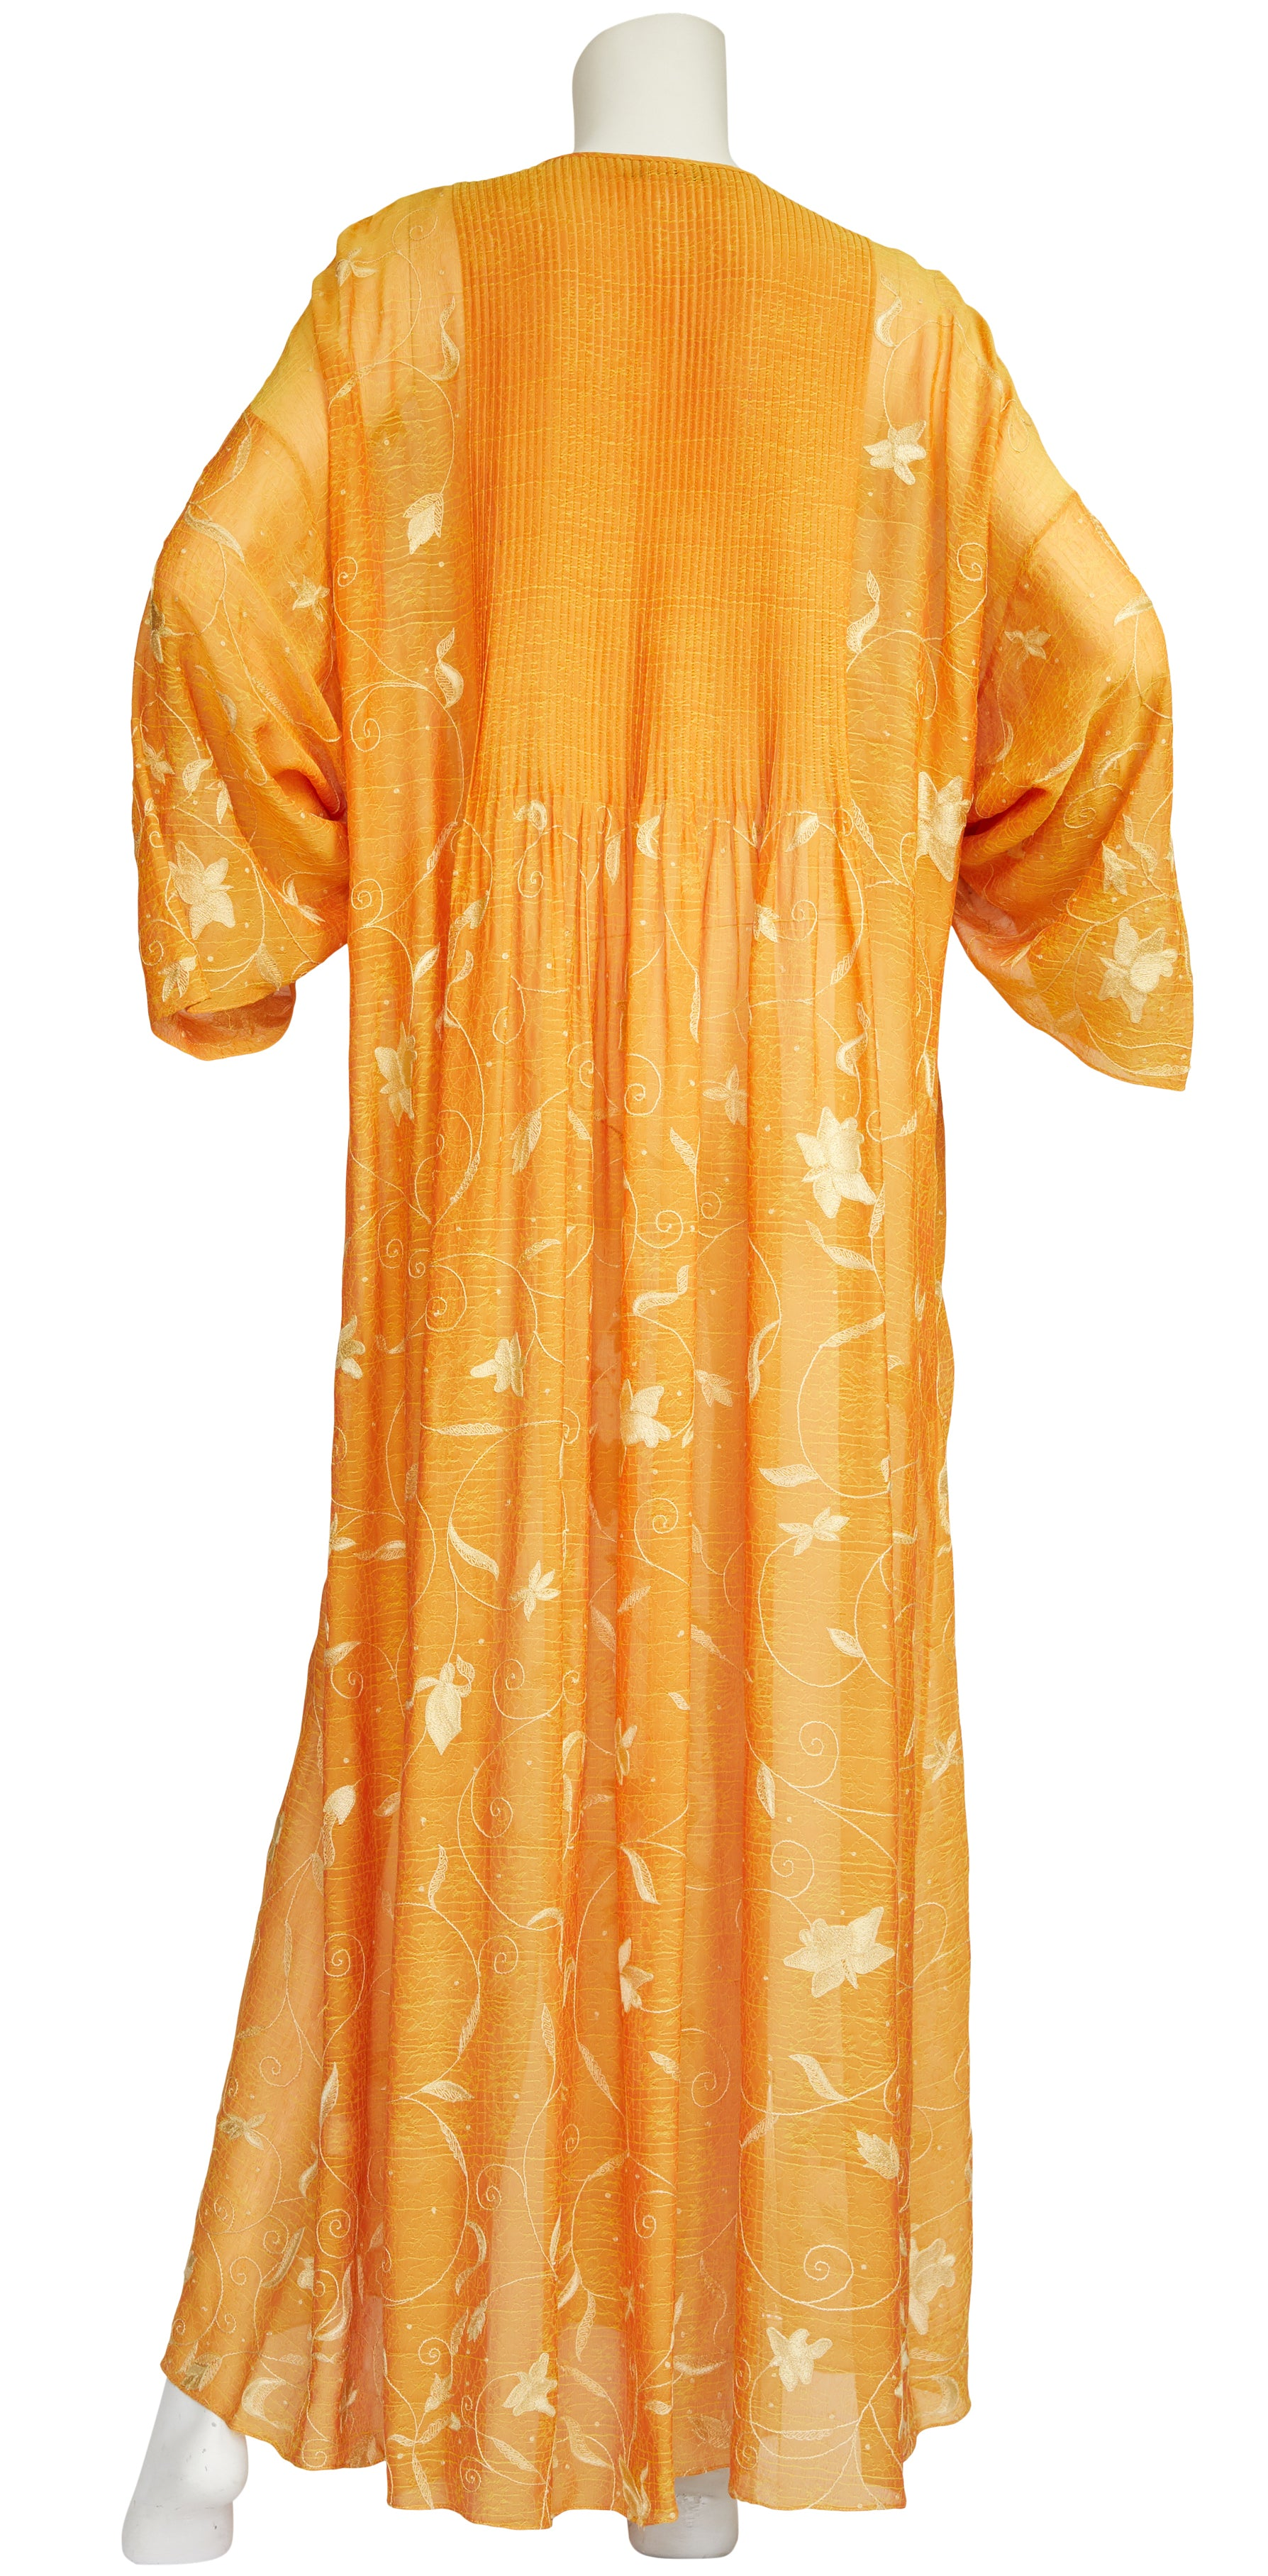 1970s Embroidered Orange Chiffon Caftan